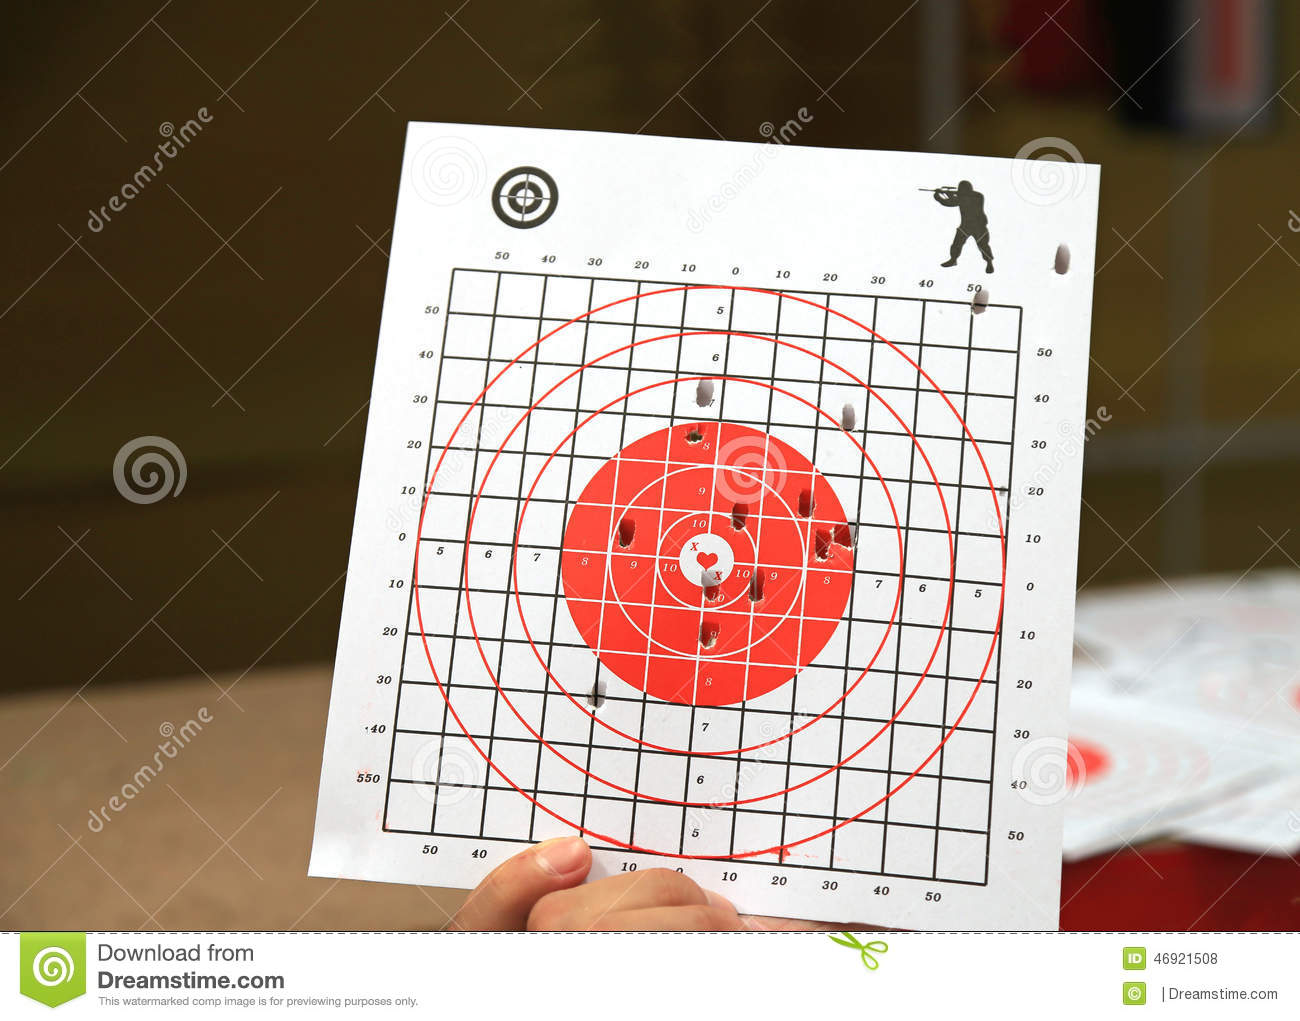 alignment paper for target stores Action target has one of the largest selections of paper targets and cardboard targets in the industry whether you're sighting in a rifle, conducting law enforcement training, or preparing for the zombie apocalypse, we have a target that meets your needs.